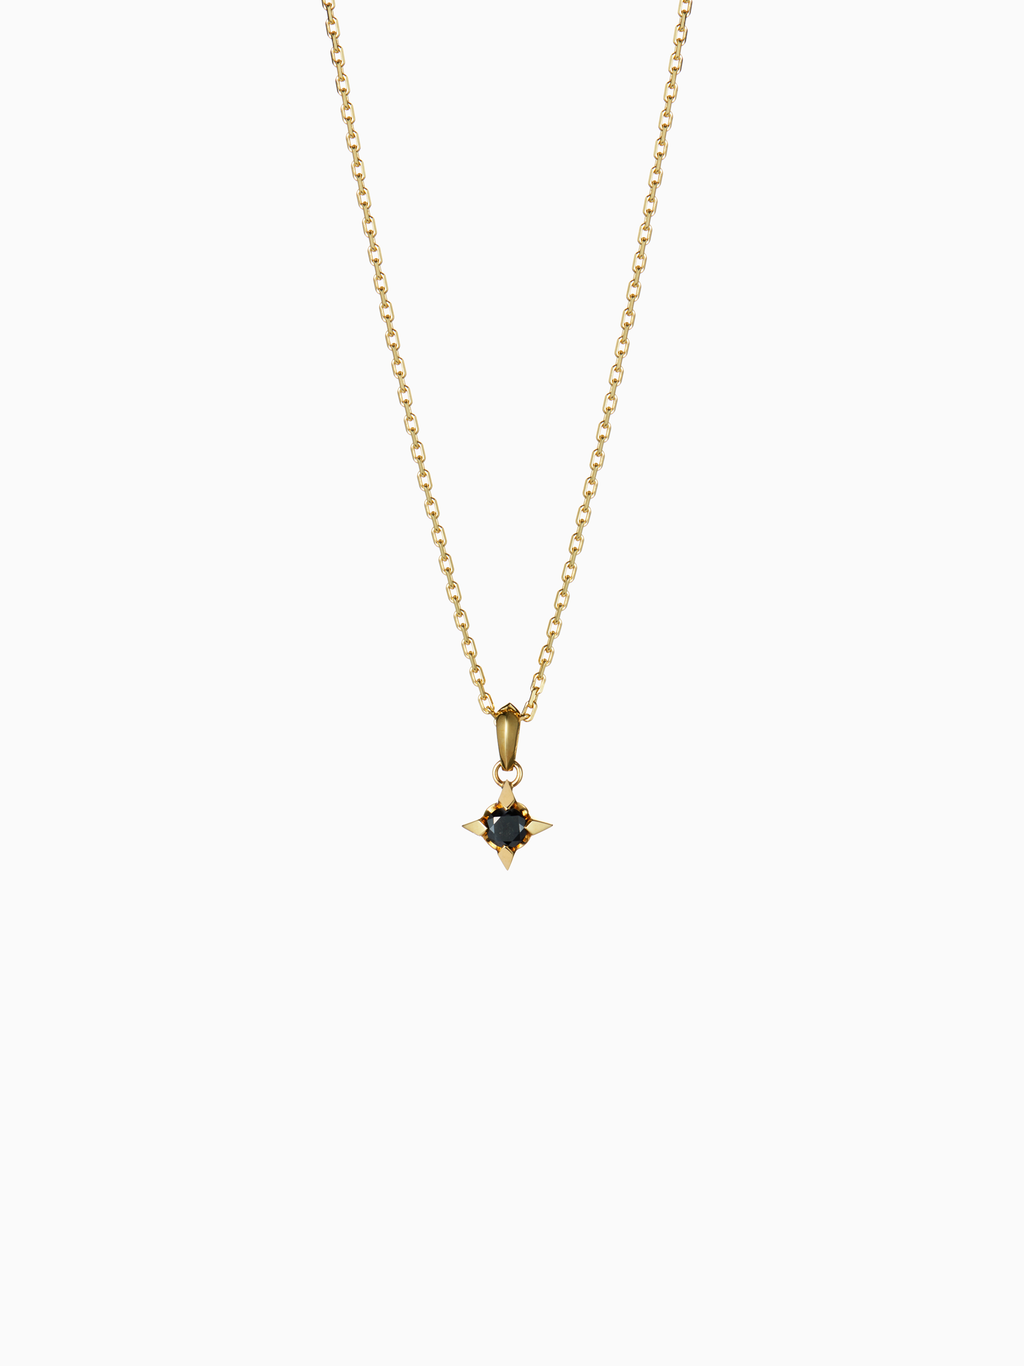 Anteres 03 / Pendant / Diamond / Gold